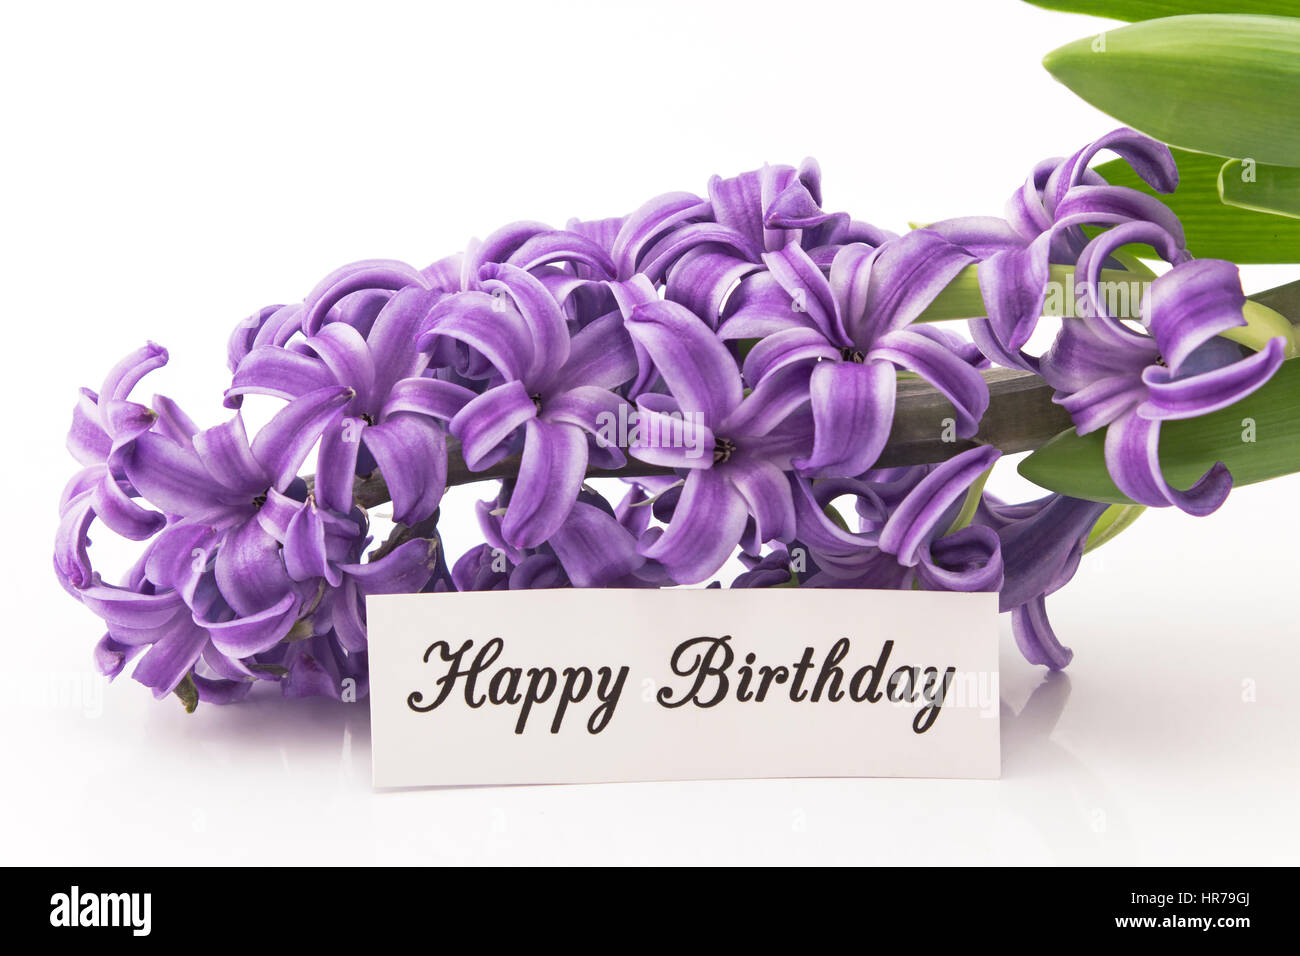 Happy birthday card with hyacinth on white background stock photo happy birthday card with hyacinth on white background dhlflorist Gallery